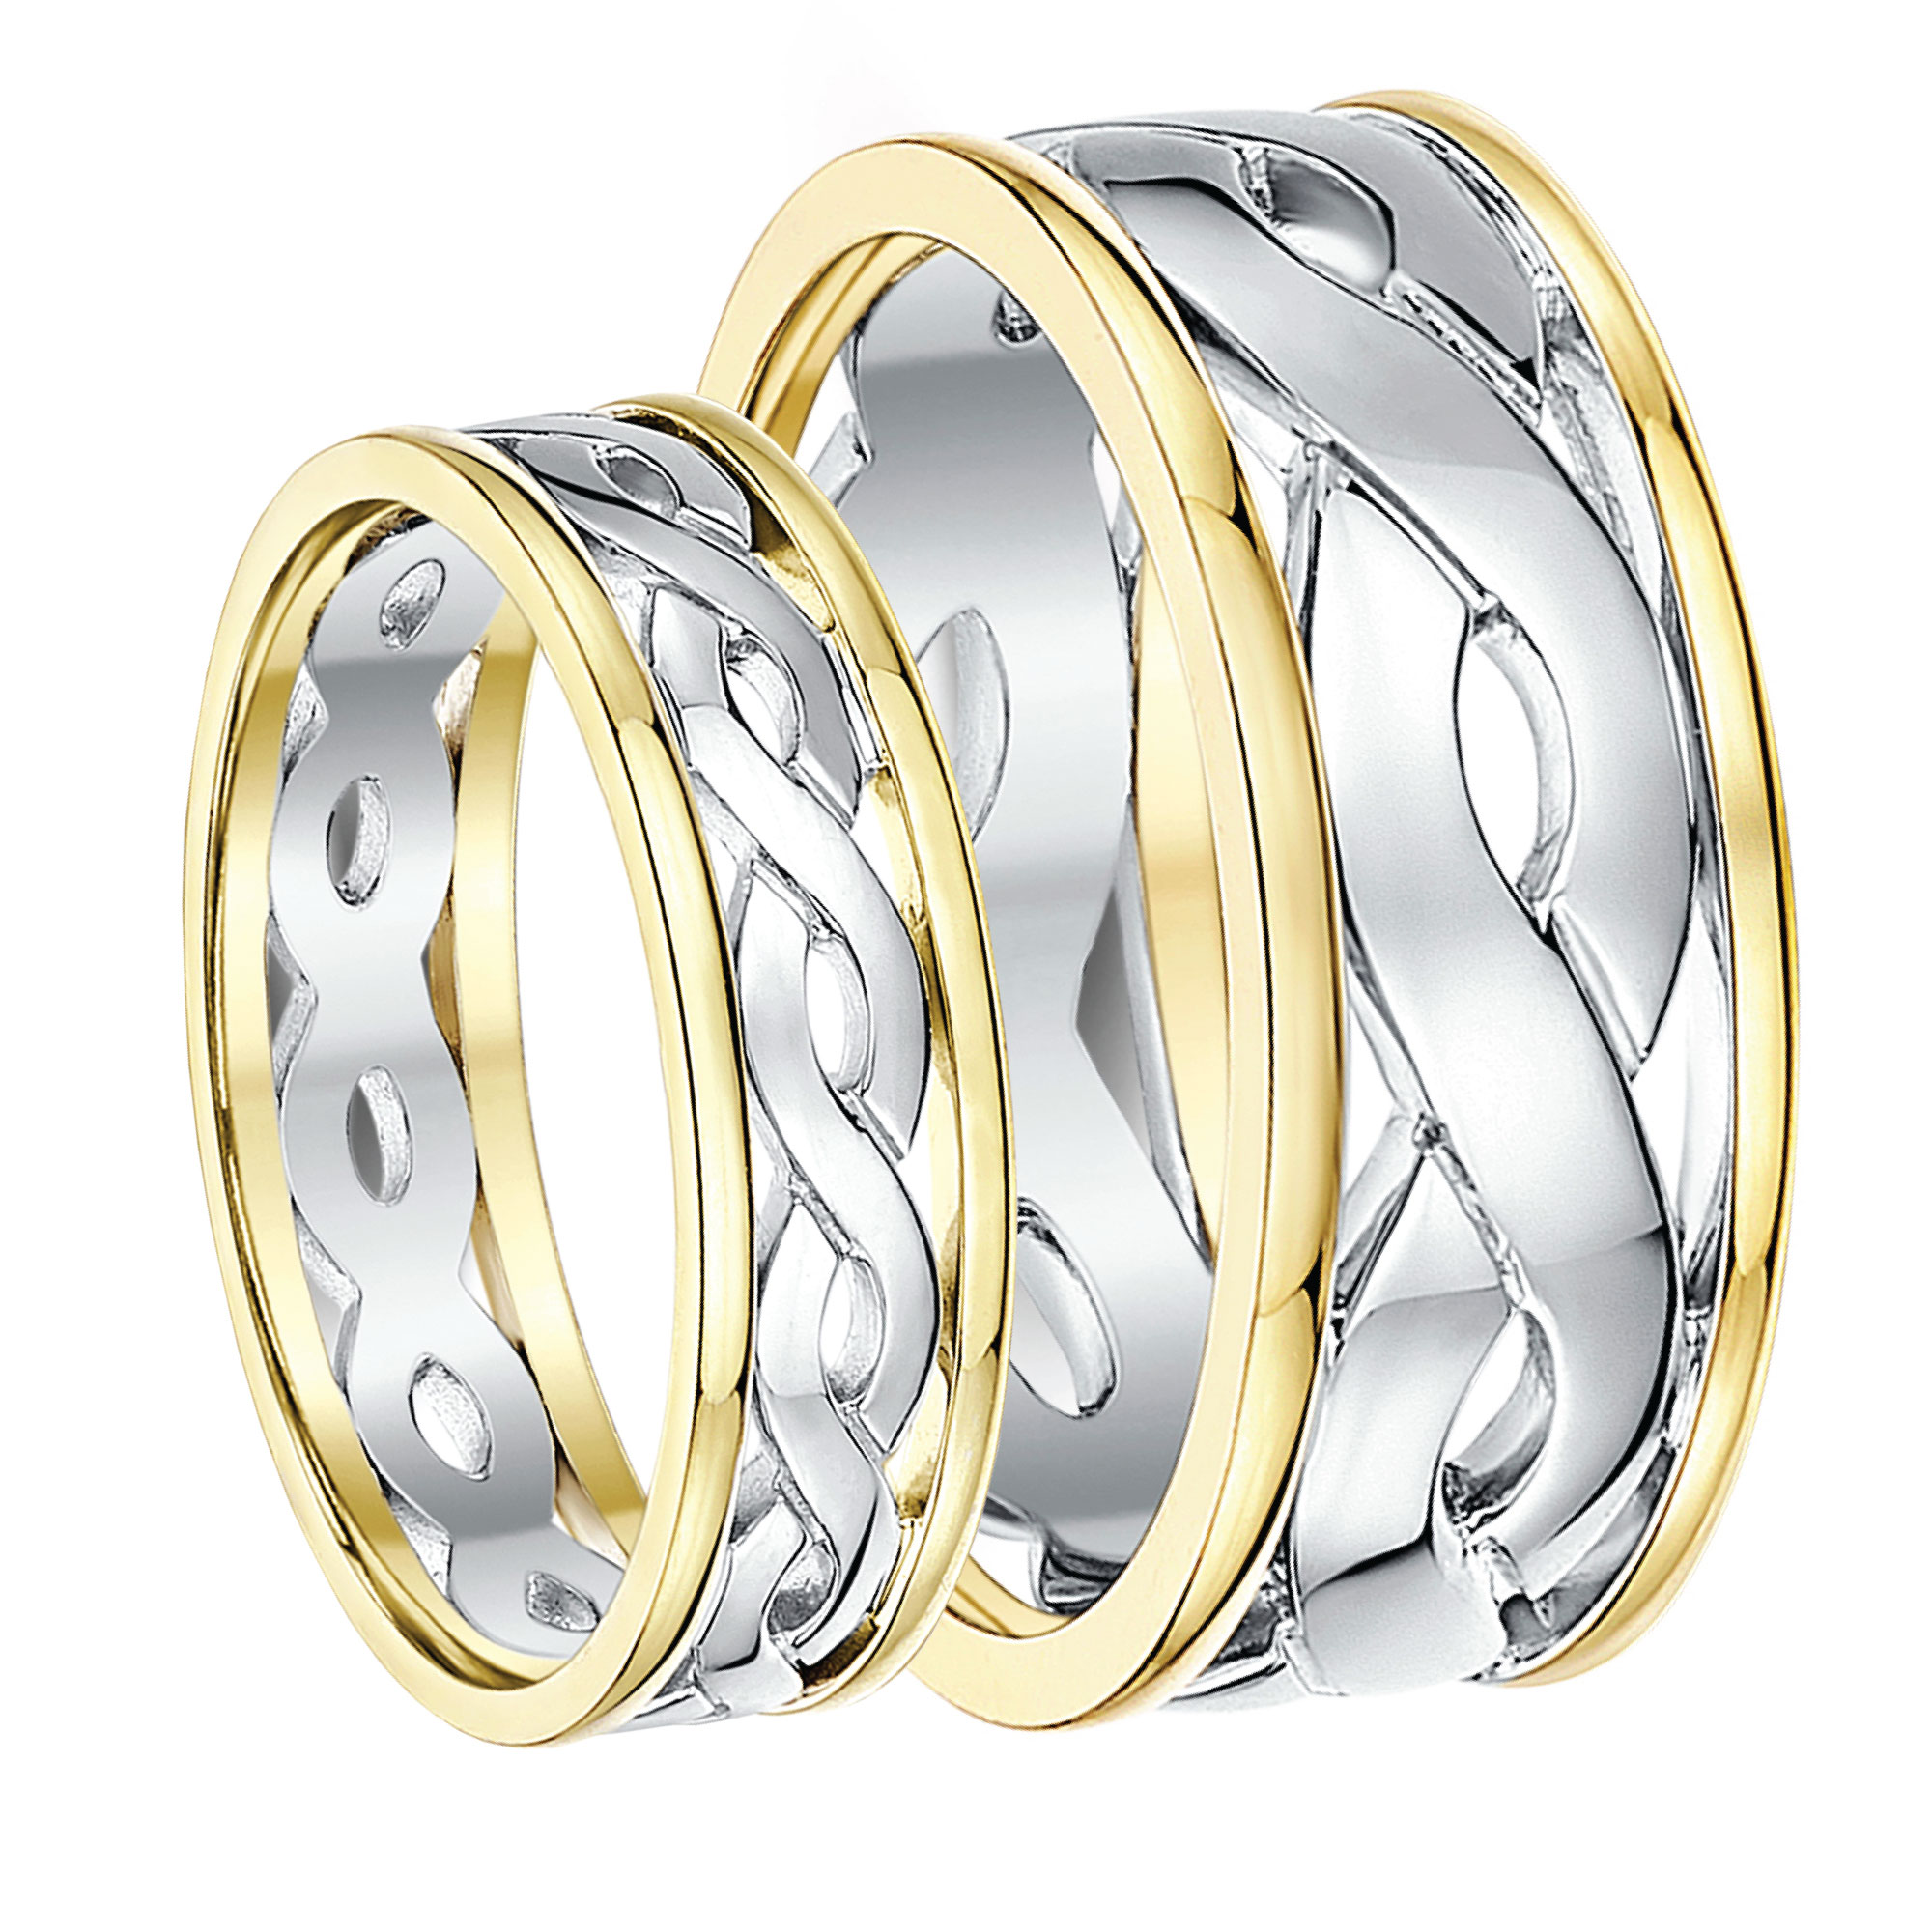 ring celtic by view gaelic full tropicaltanning sebastian rings finke wedding info best size with